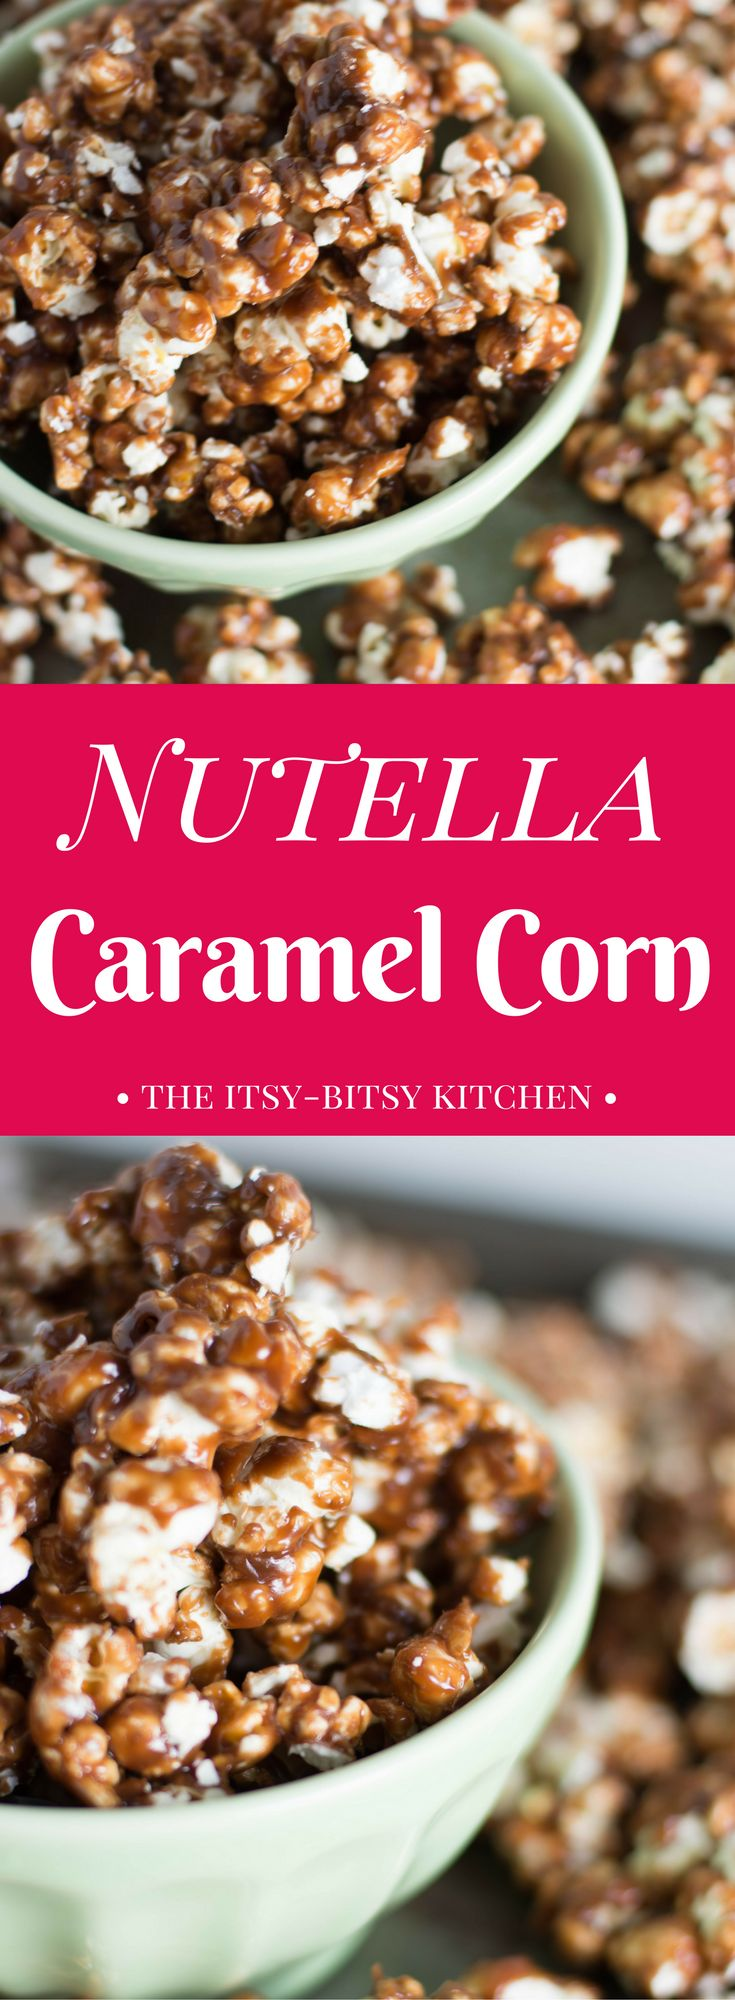 Nutella caramel corn is a delicious snack for you and all your chocolate and hazelnut loving friends. Recipe from itsybitsykitchen.com #caramelcorn #nutella #chocolate